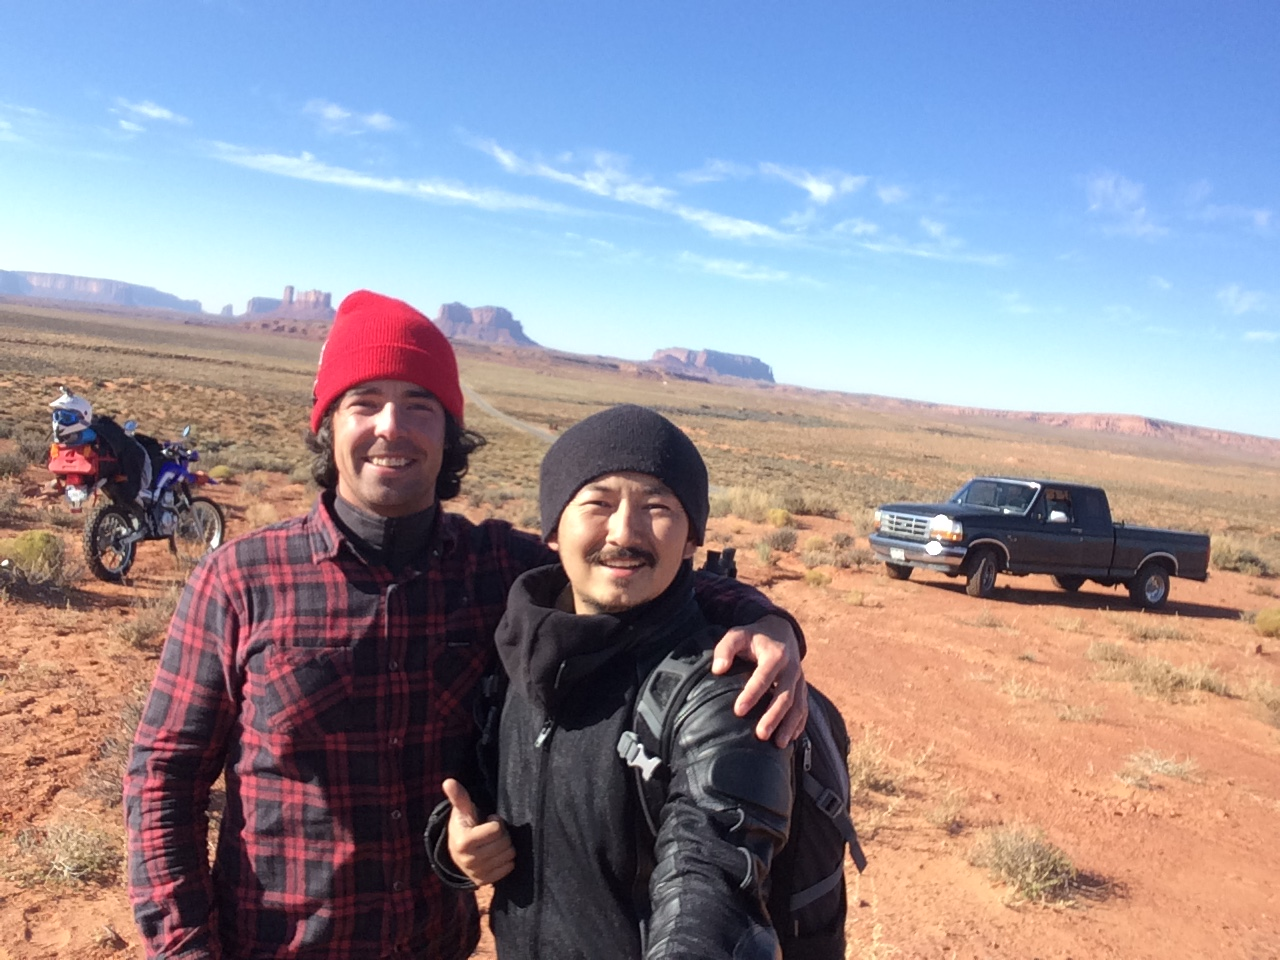 Myself and Airken...with our trusty mobiles. Monument Valley, Arizona